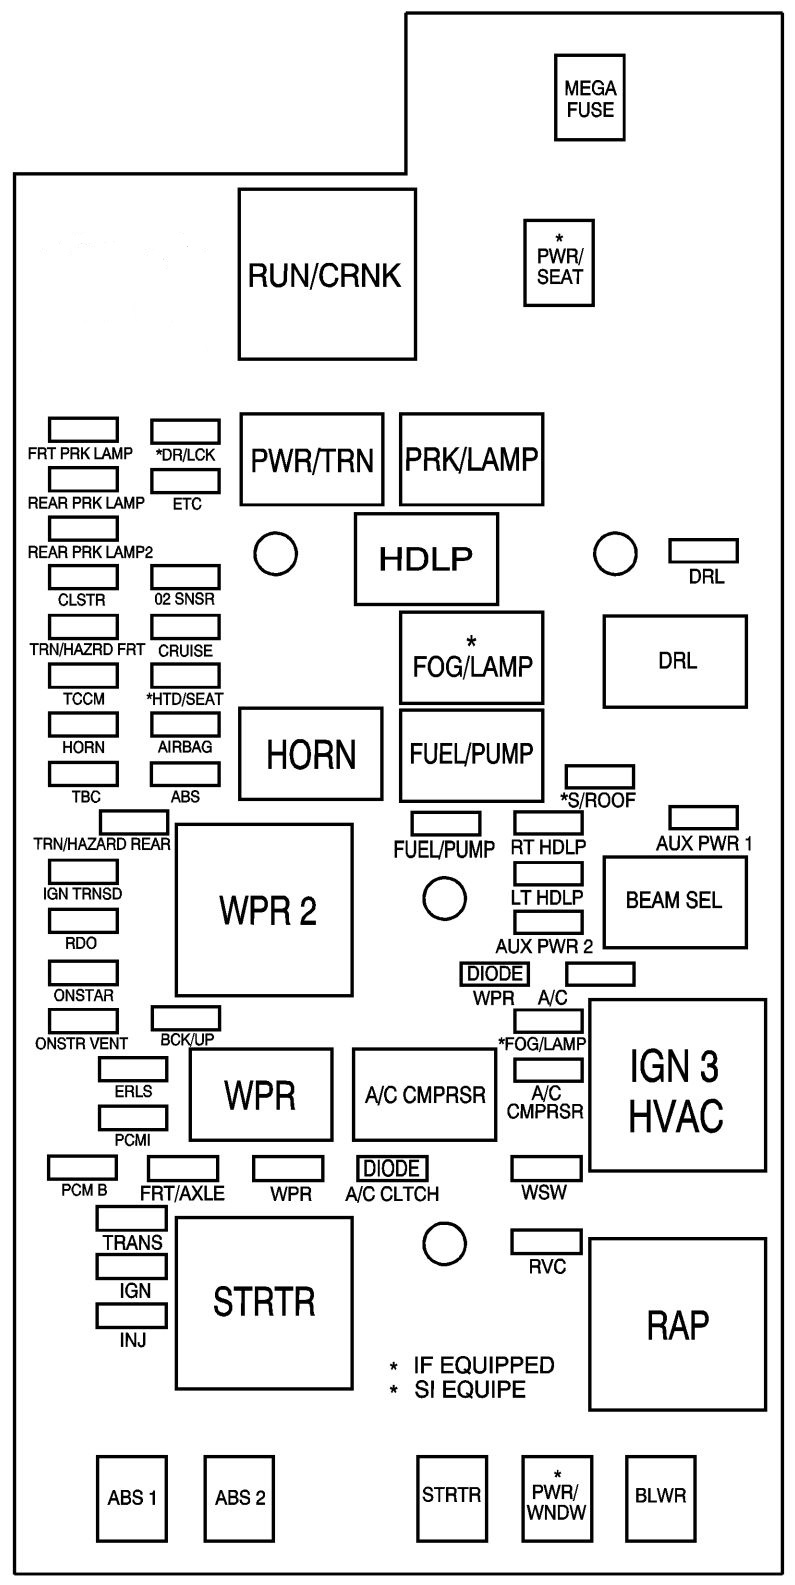 medium resolution of 2012 prius fuse diagram wiring diagrams sapp 2012 prius wiring diagram 2012 prius fuse diagram